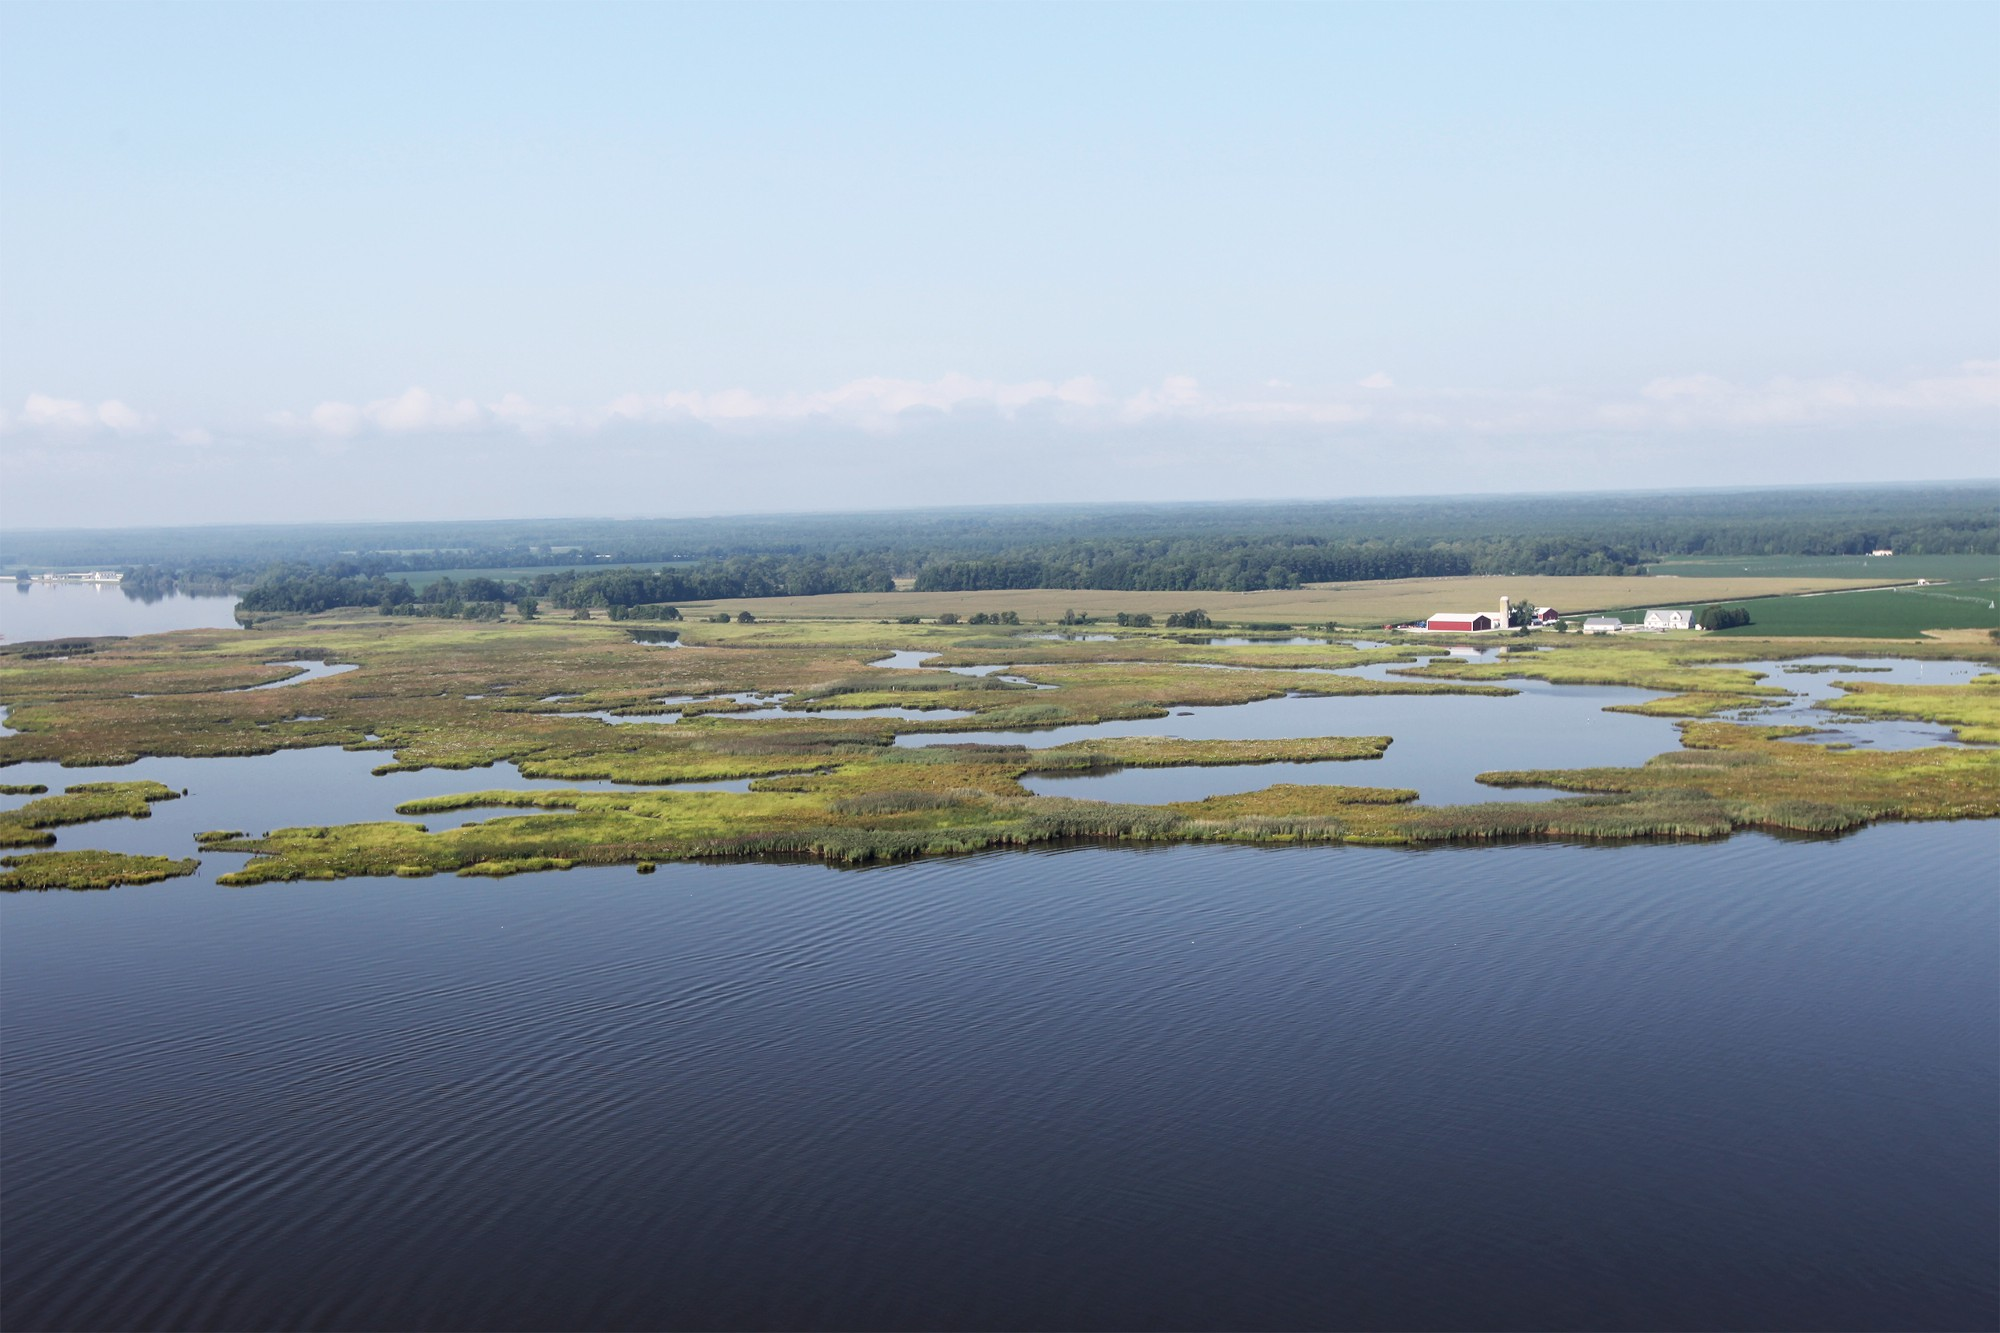 Aerial photo of river with marsh and farm in background